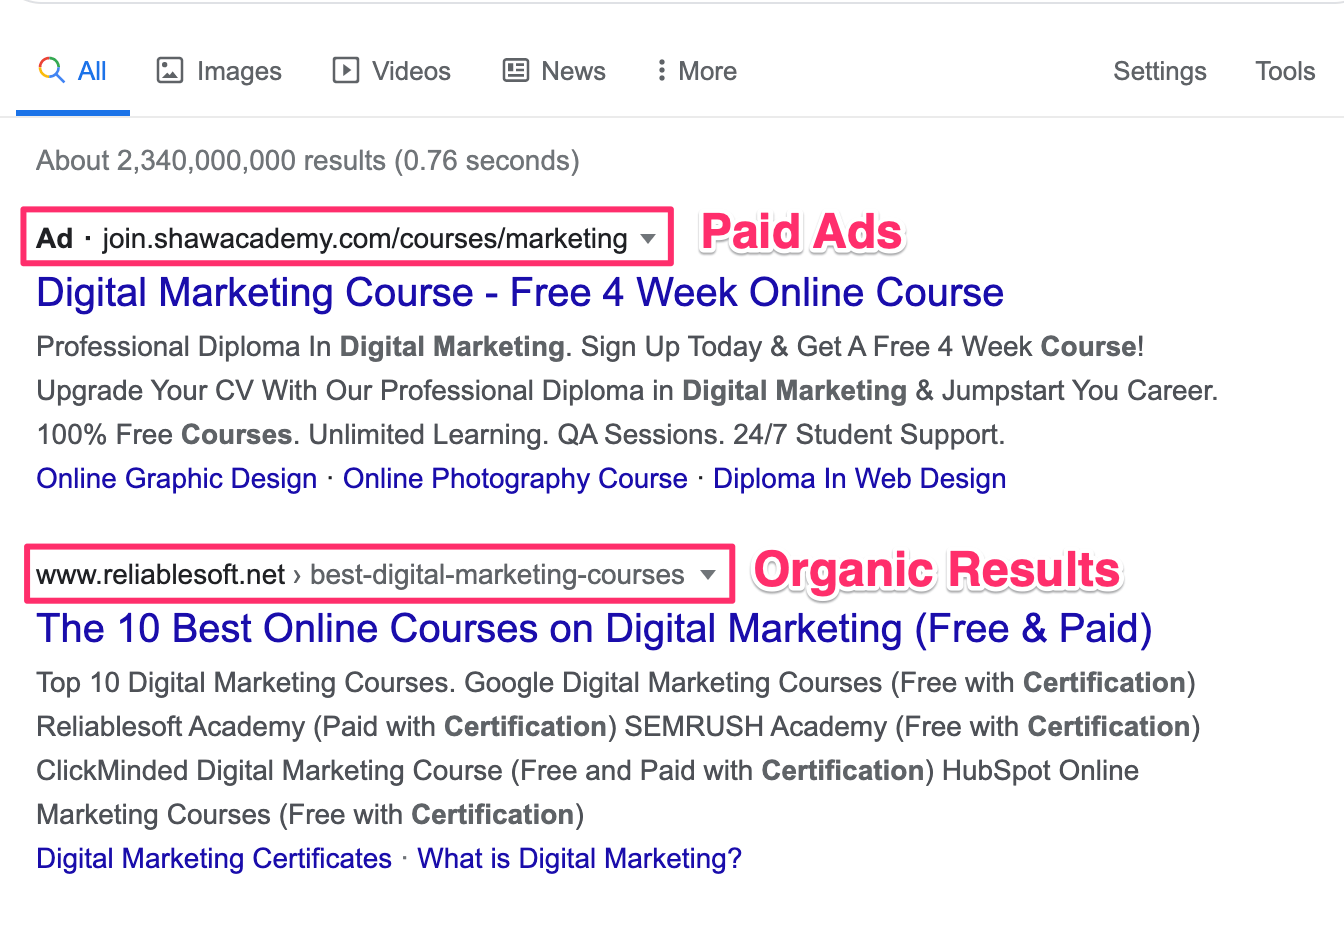 Paid Ads in Google Results